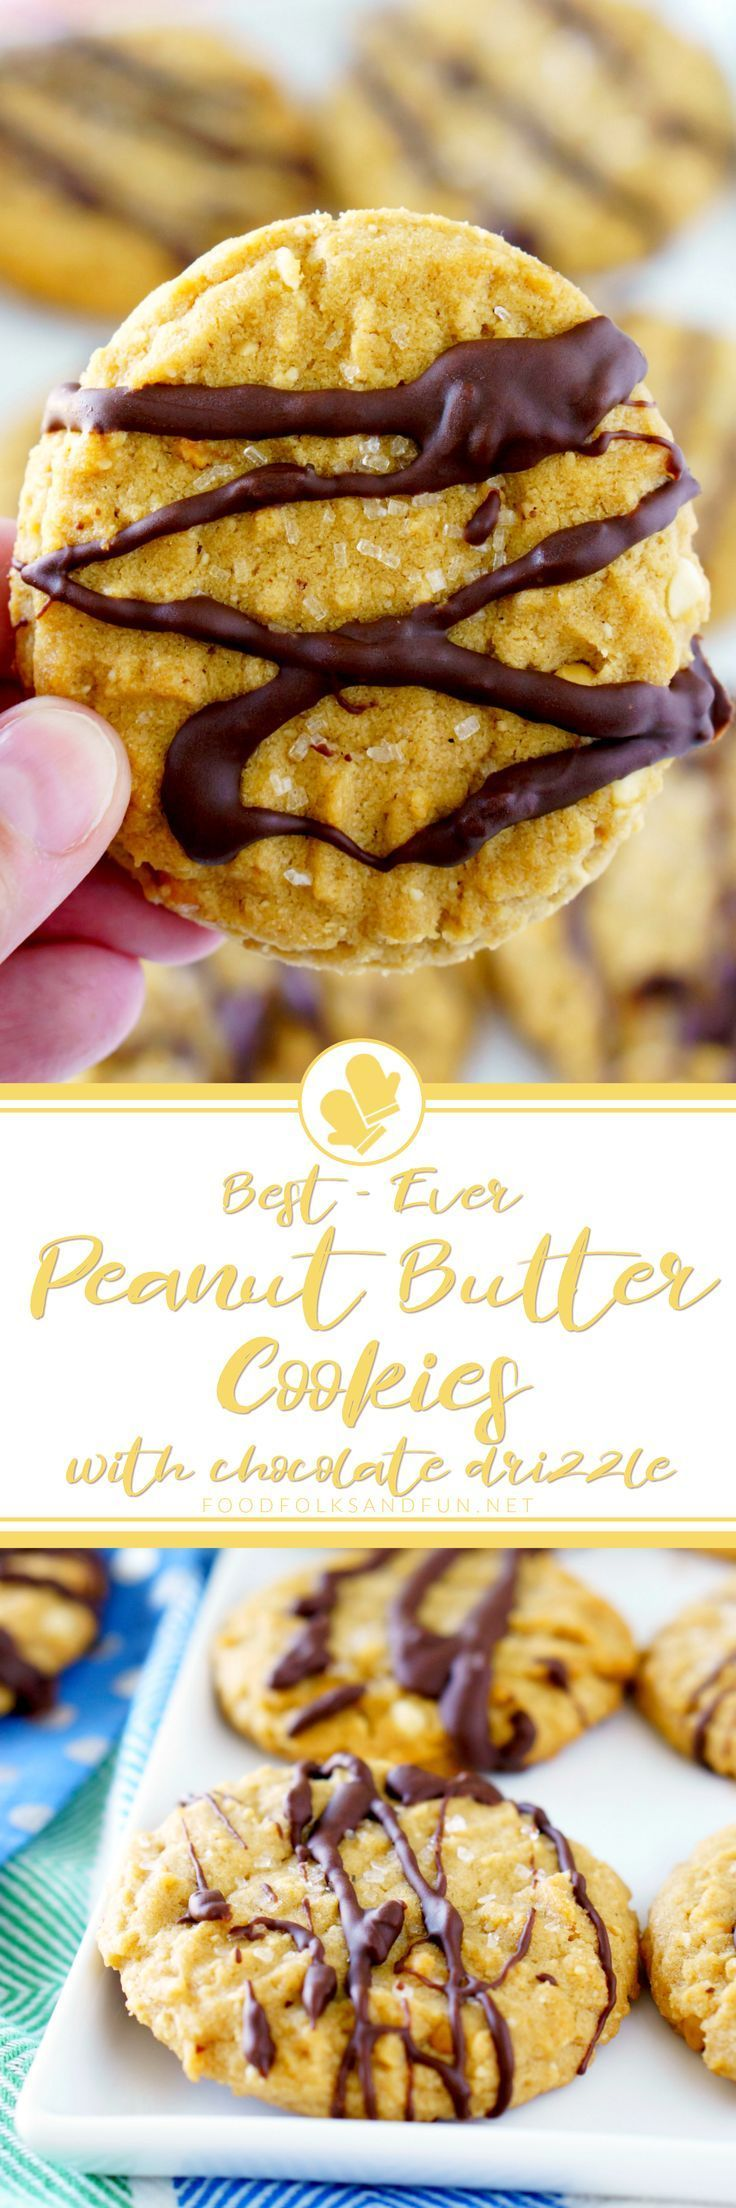 These are the Best Peanut Butter Cookies EVER! They're soft, super nutty, and drizzled with just the right amount of chocolate.